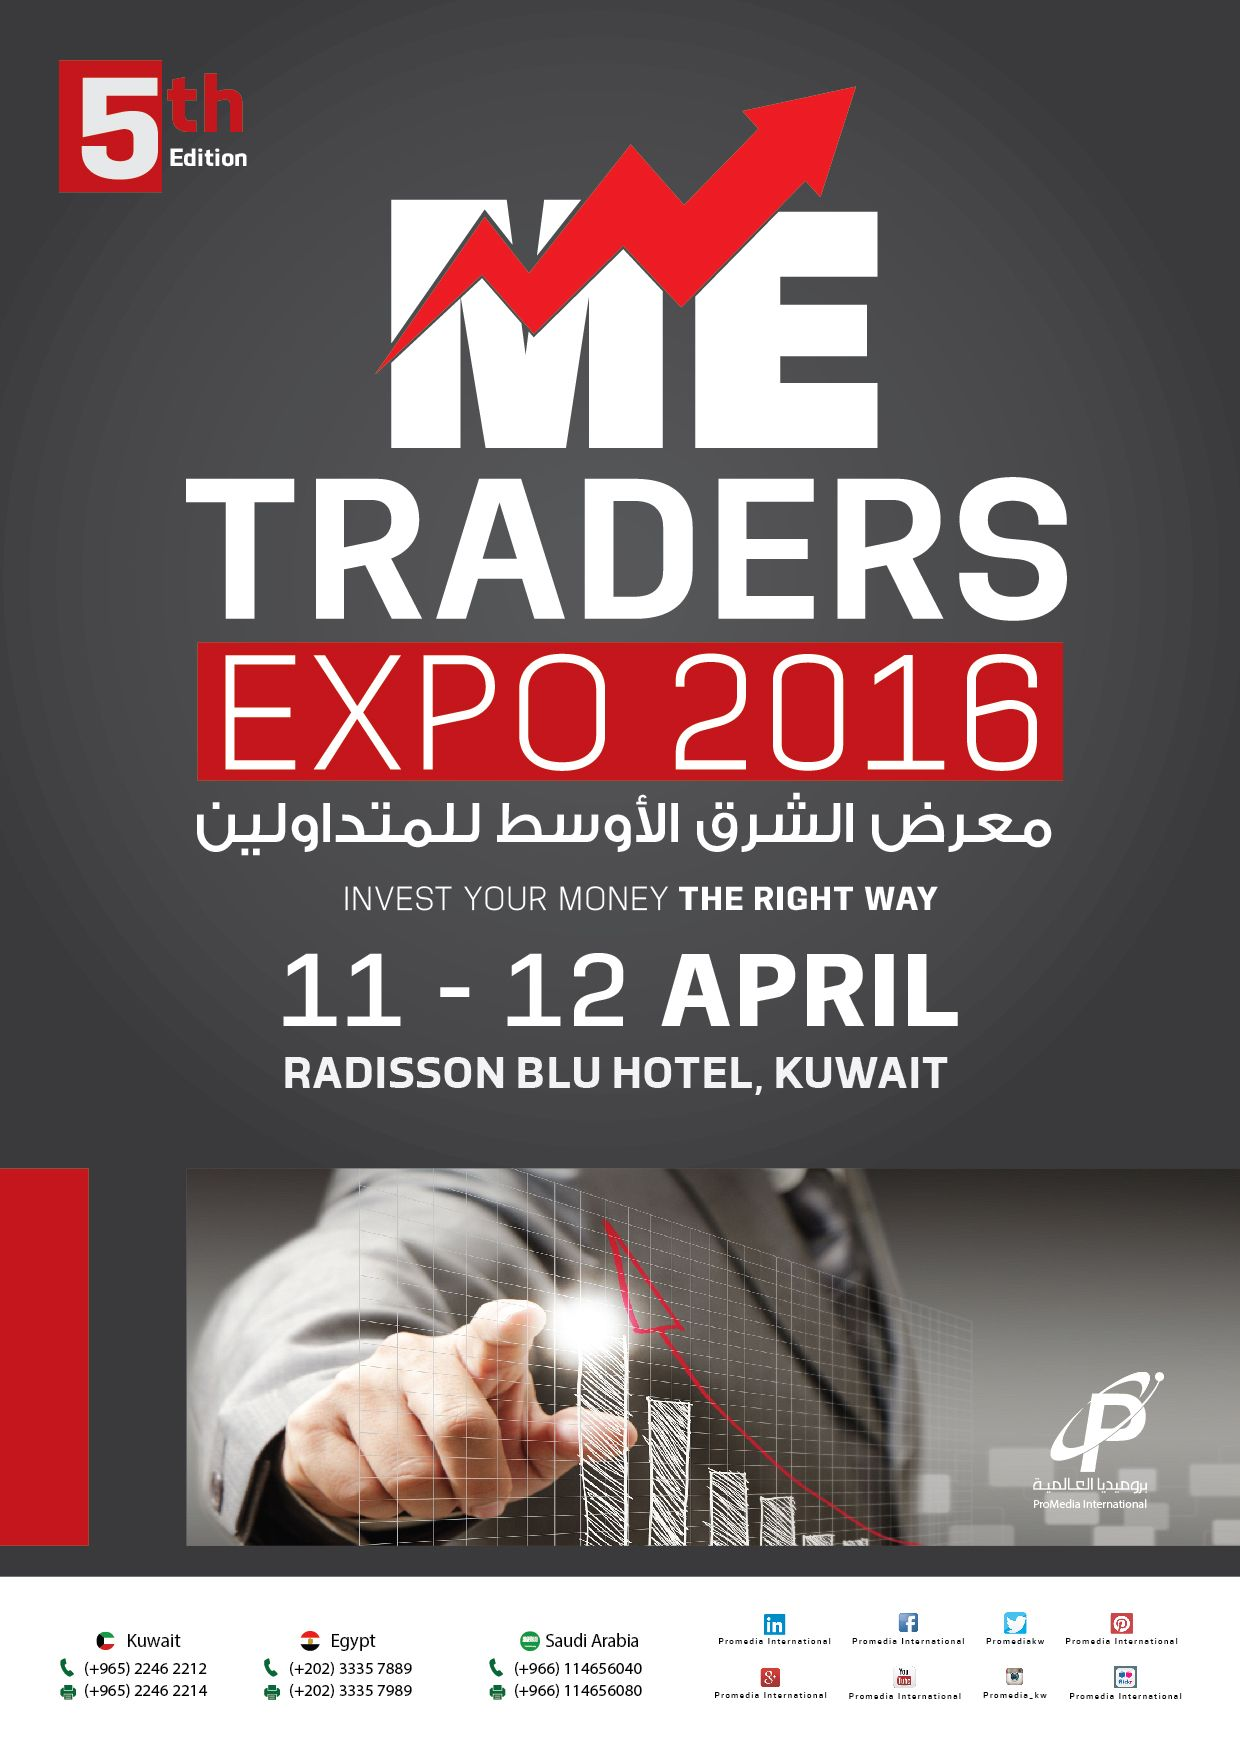 The ME Traders Expo is the educational platform for traders and investors who want to sharpen their trading knowledge techniques and strategies. http://metraders.com/